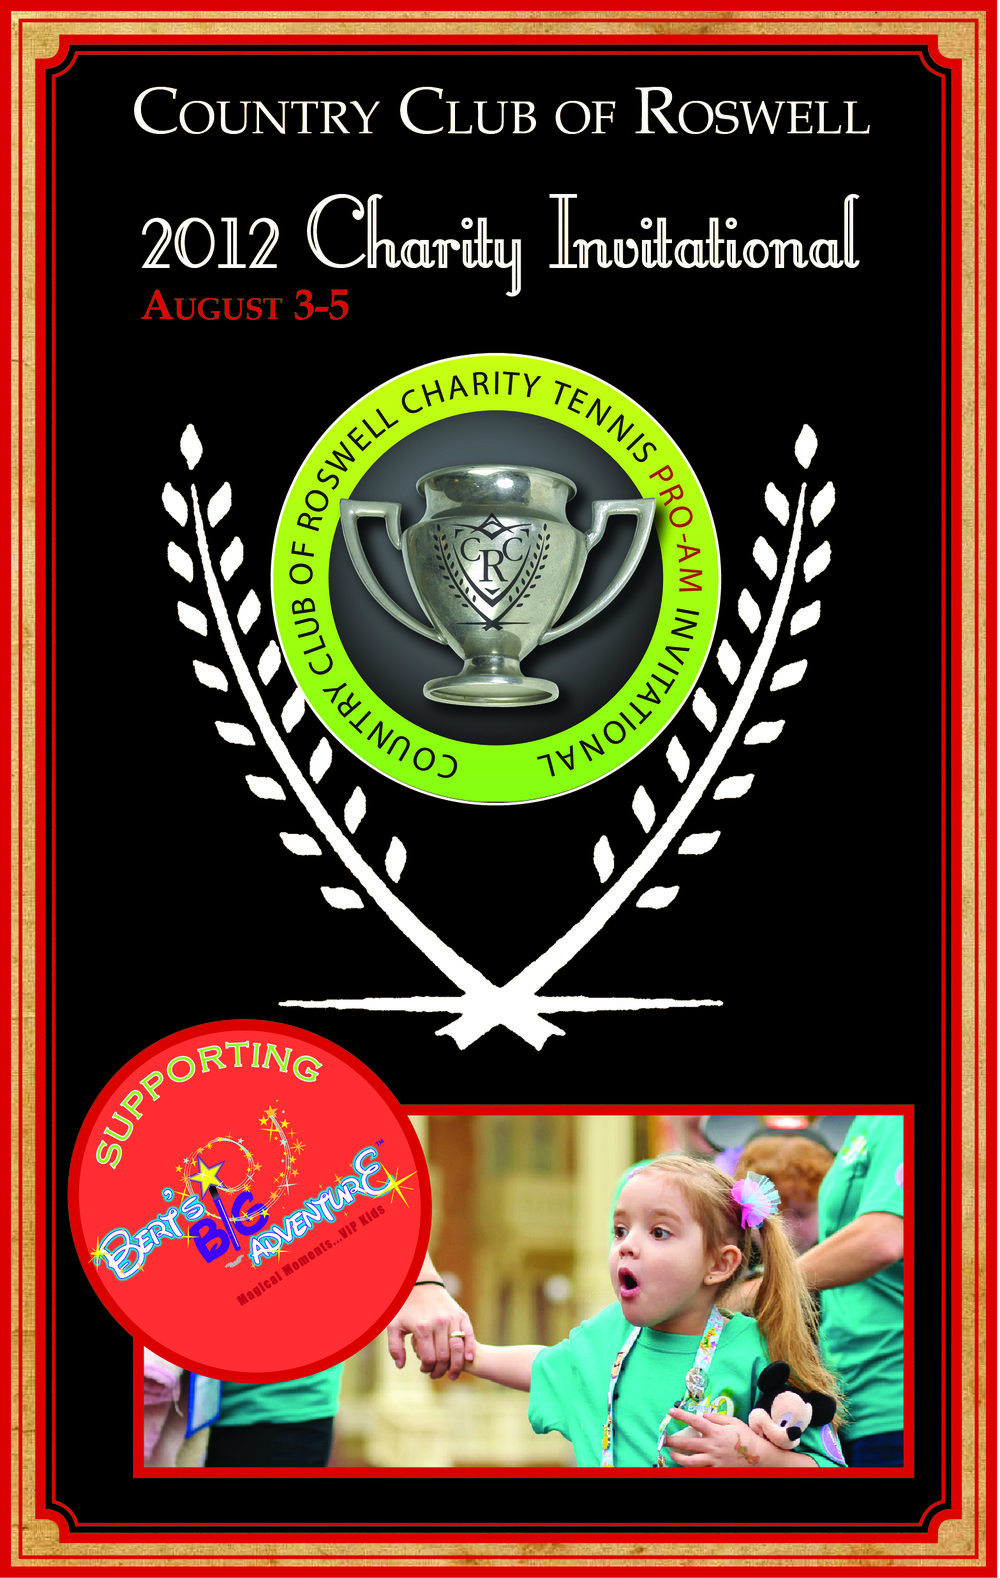 program cover form country club of roswell.jpg